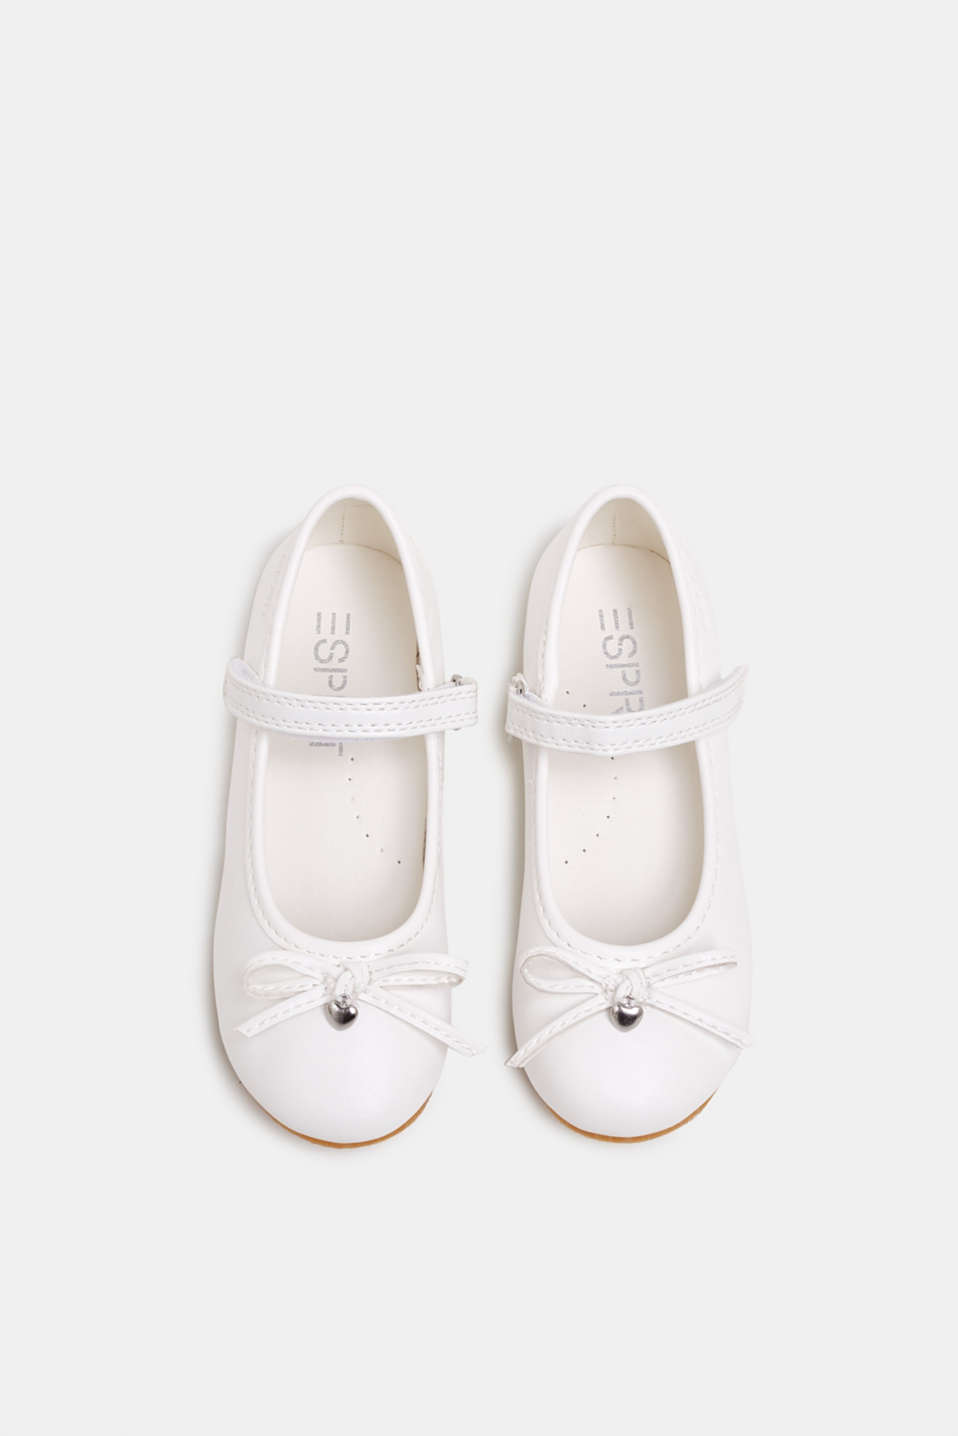 Ballerinas with Velcro straps, in faux leather, WHITE, detail image number 1